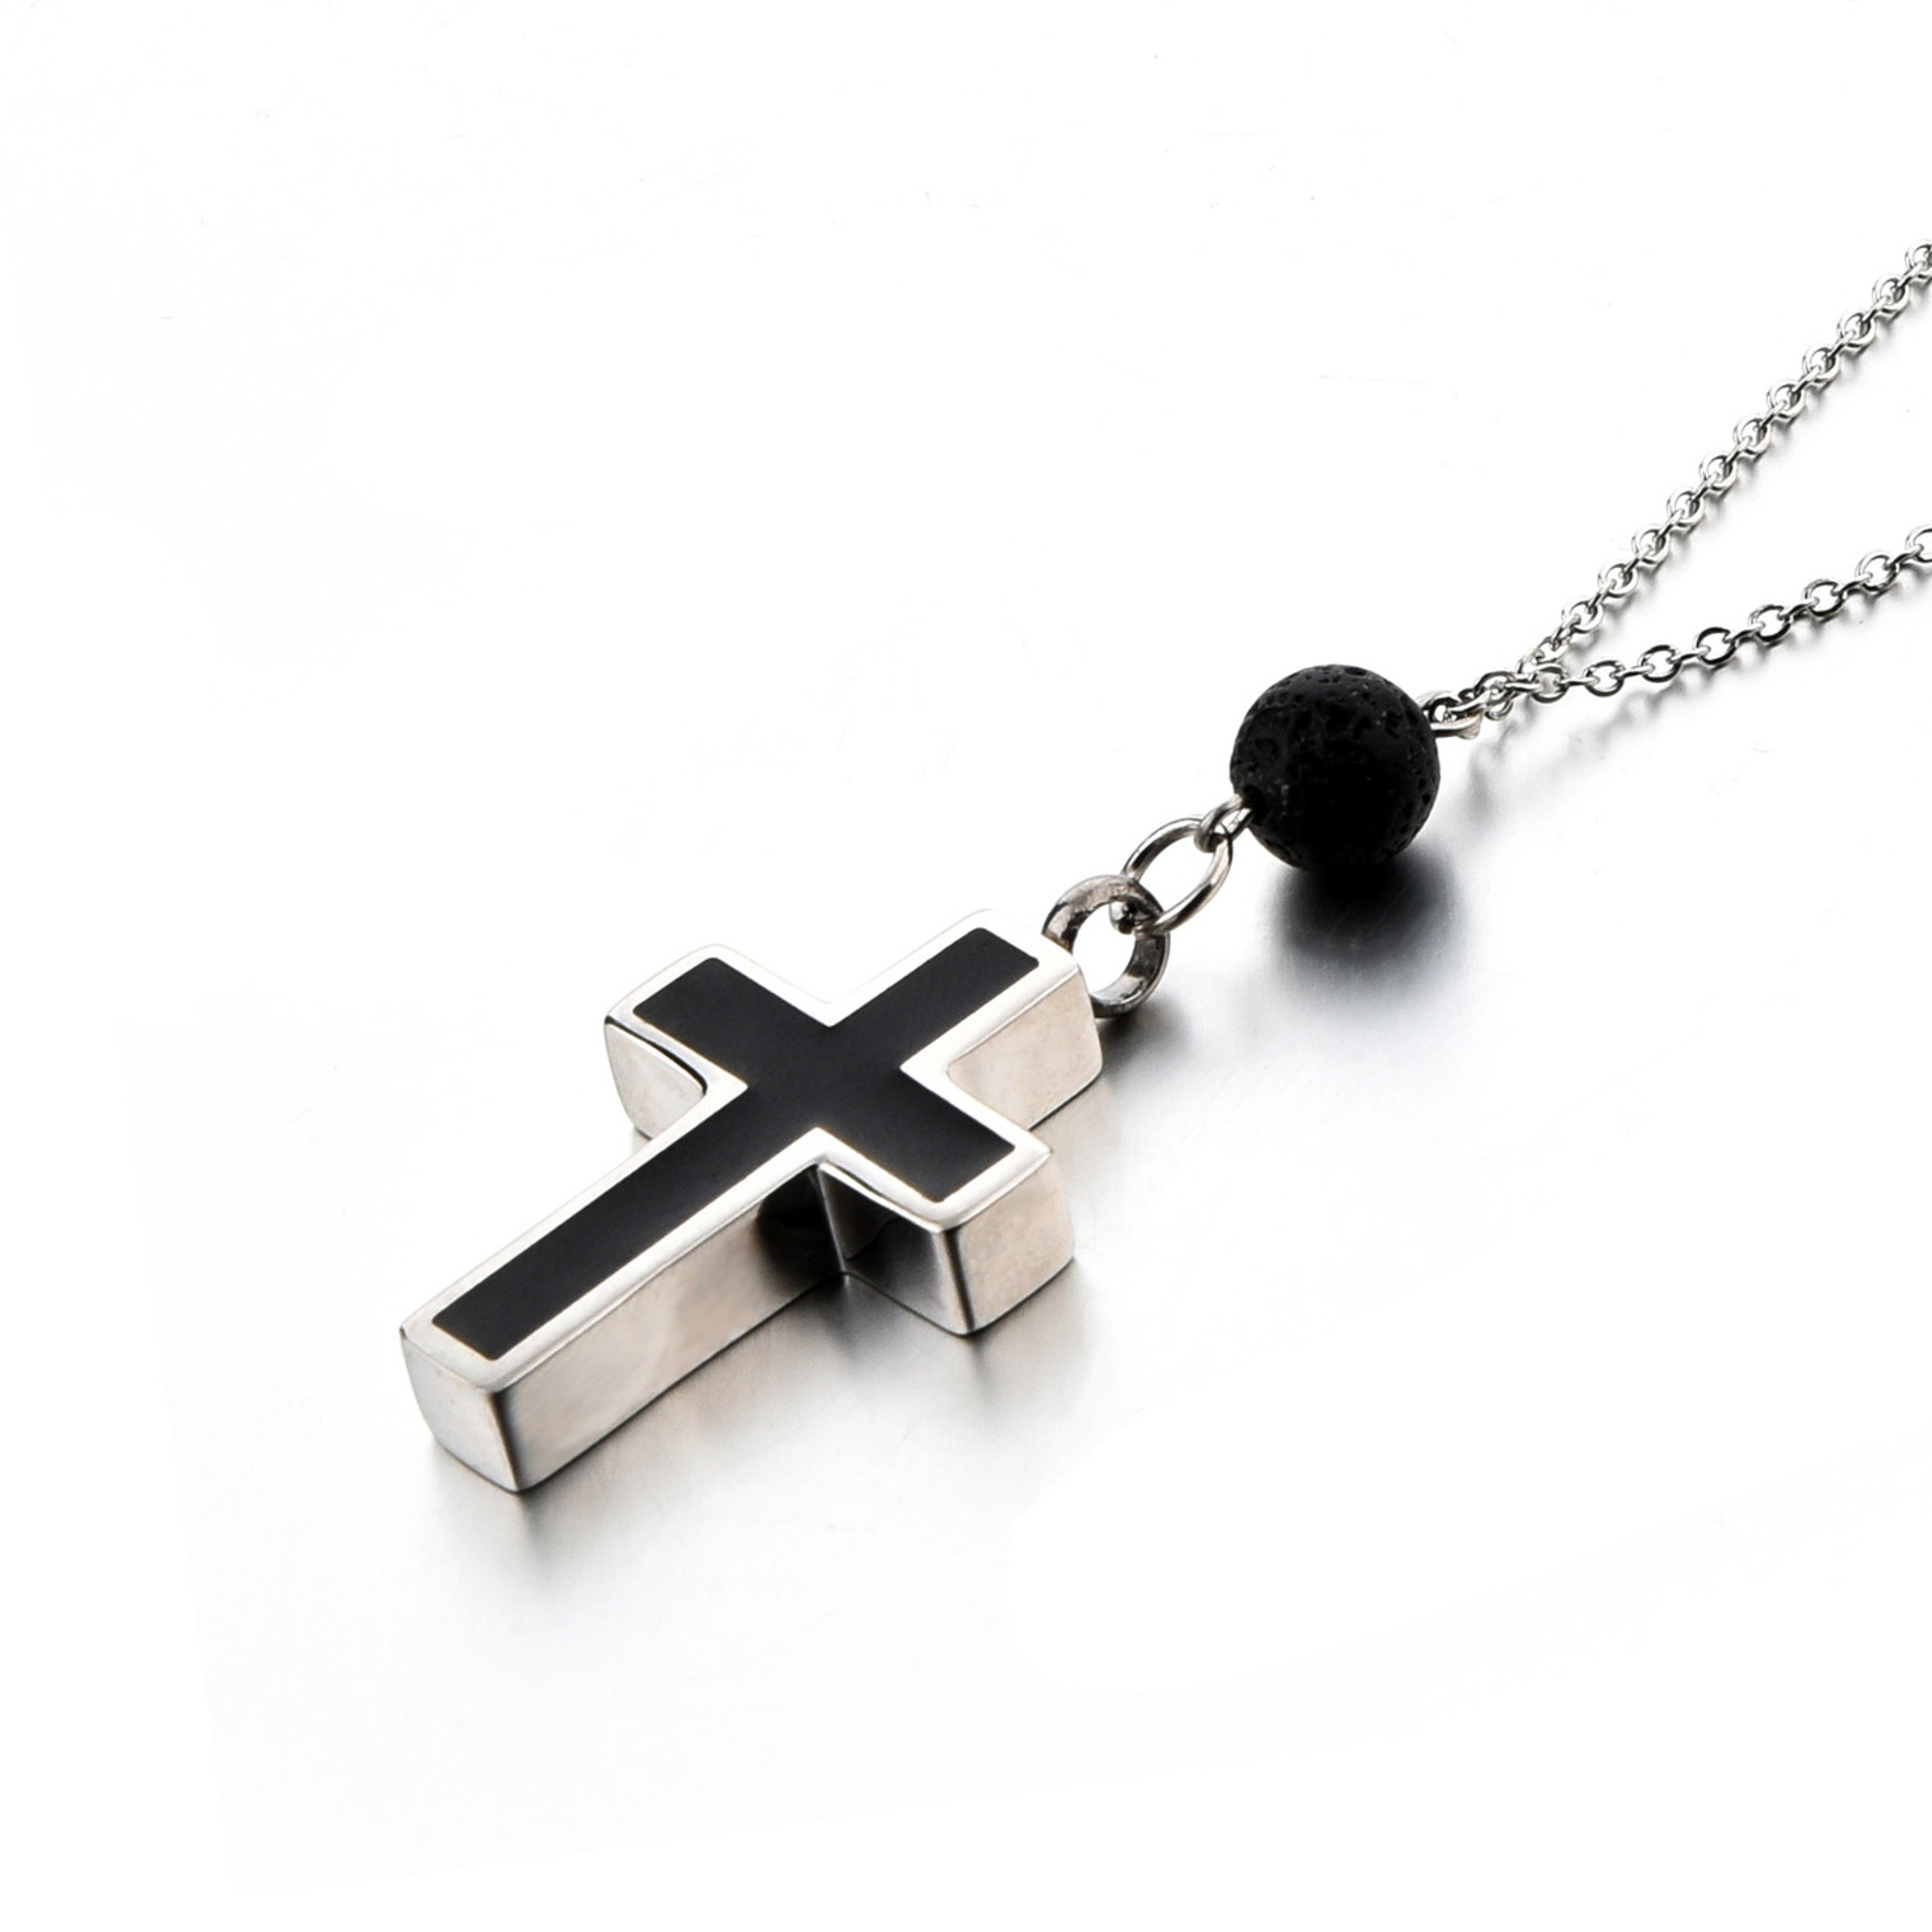 Cross Urns Jewelry for Ashes Stainless Steel Cremation Urn Pendant Memorial Keepsake Cremation Jewelry